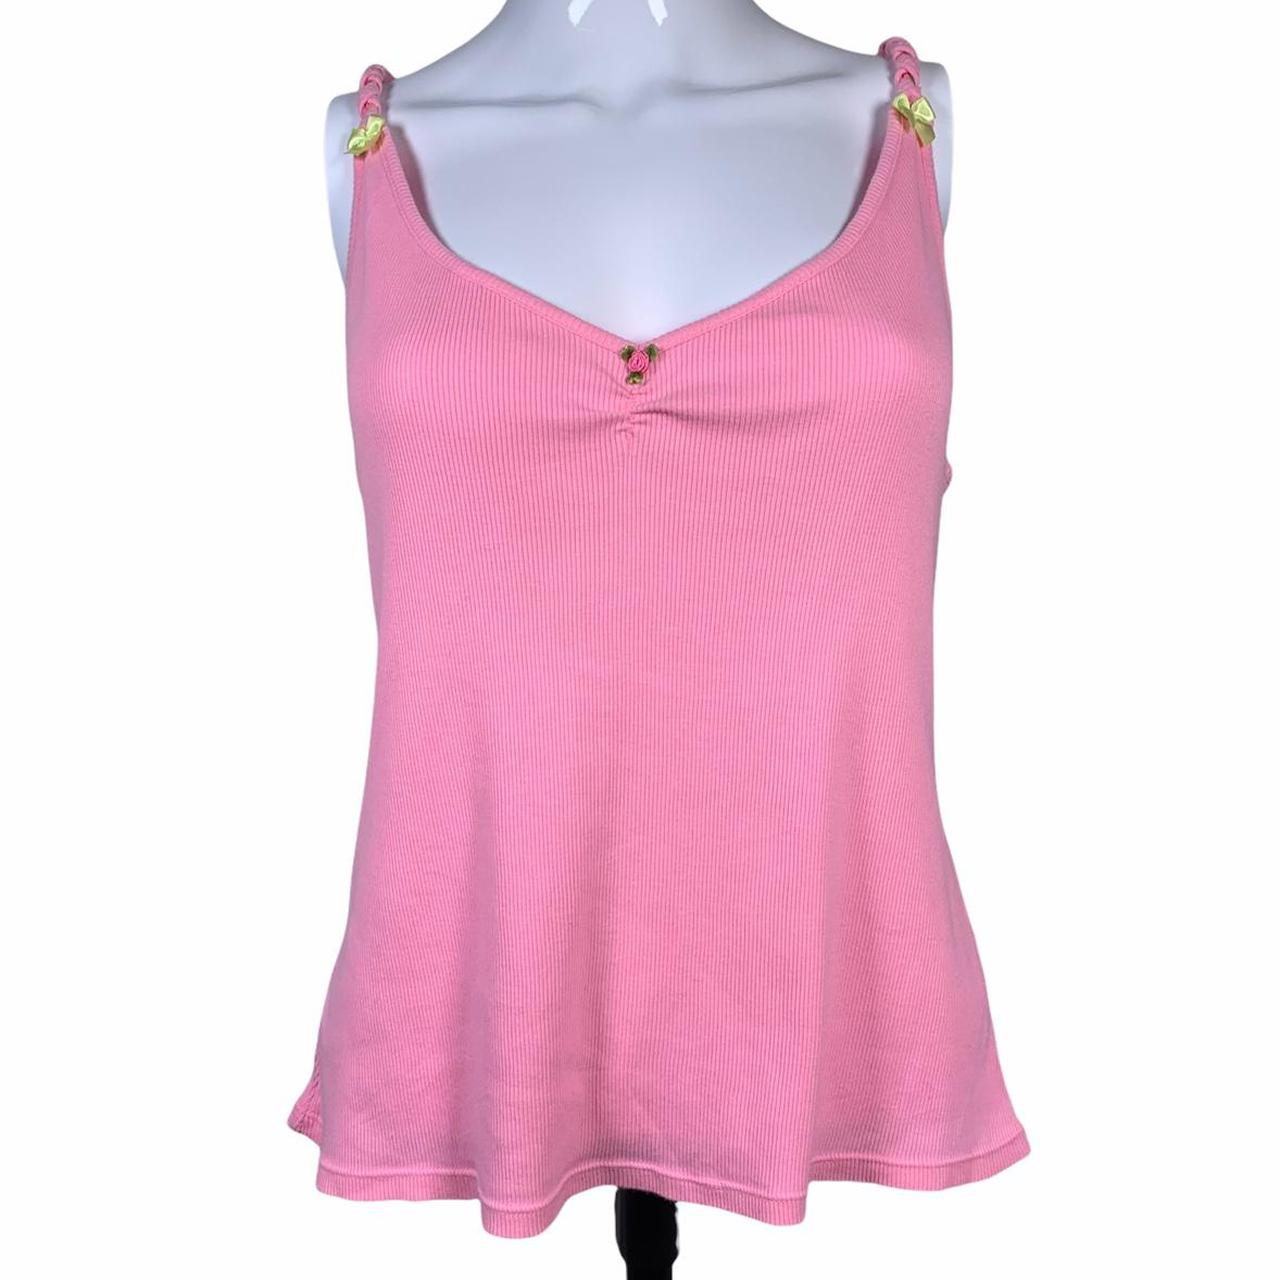 Product Image 1 - early 2000s baby pink rosebud